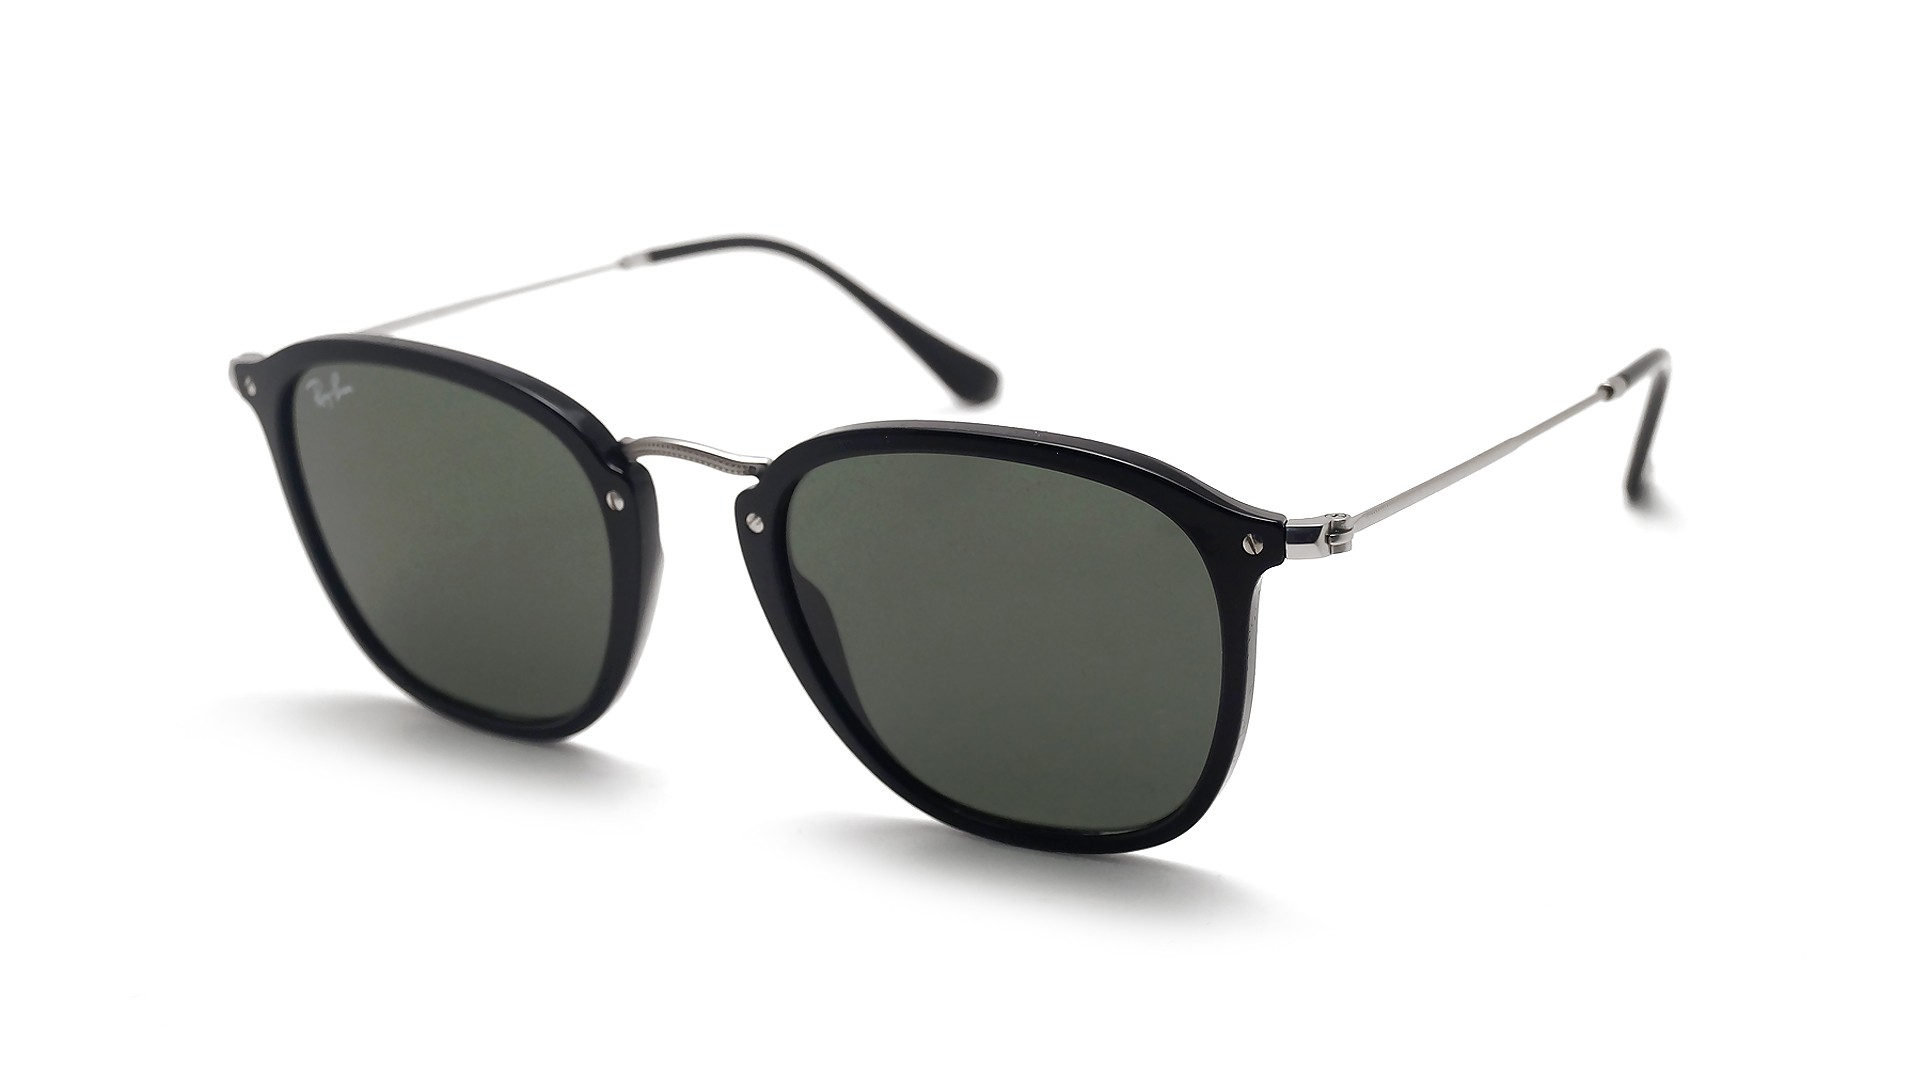 Ray-Ban RB2448N 901 51-21 Flat Lenses Black